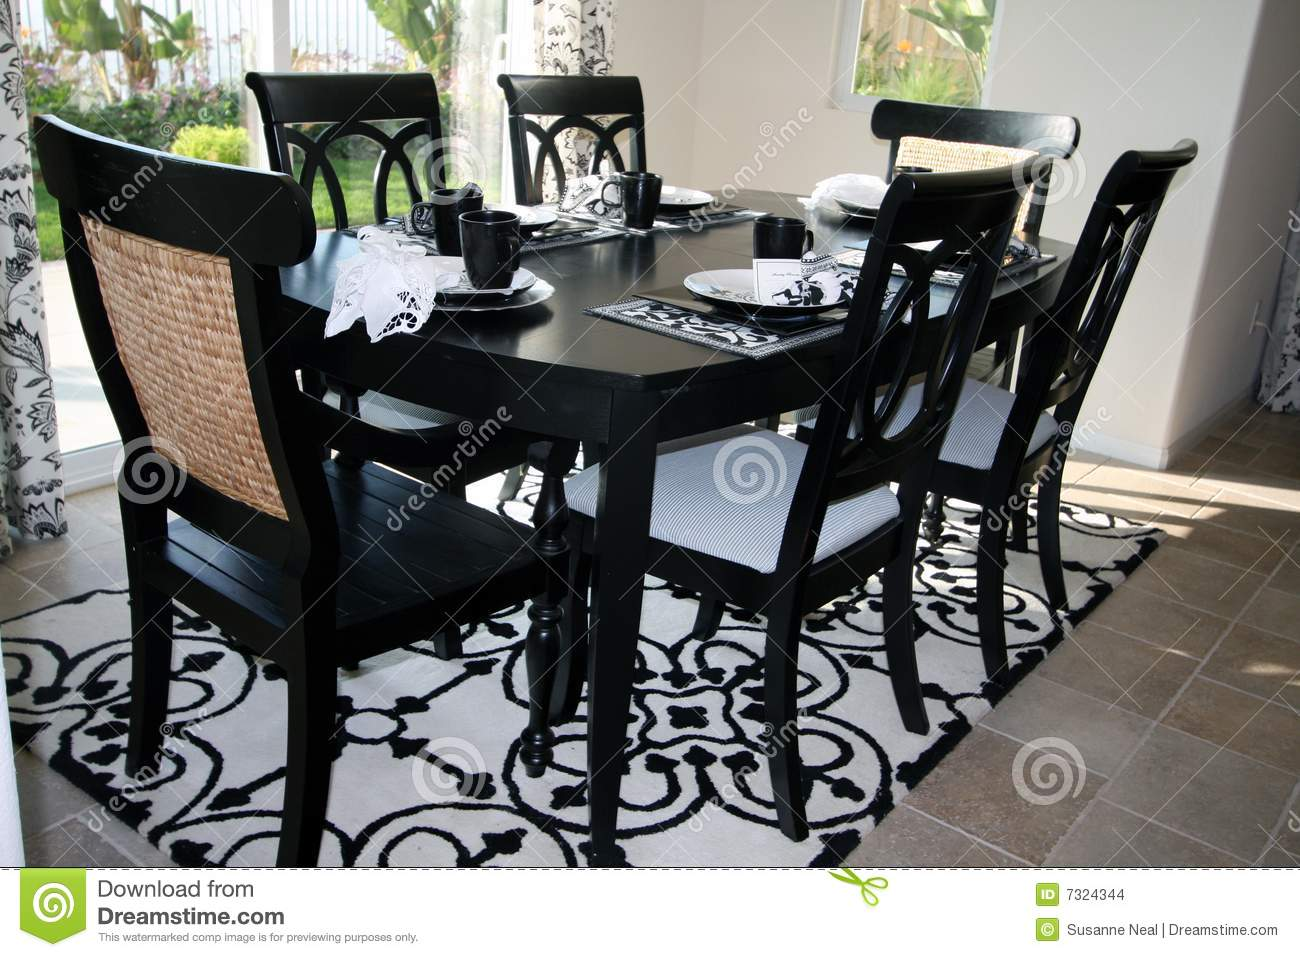 Black and white dining room sets - Dining Room With Round Dining Table